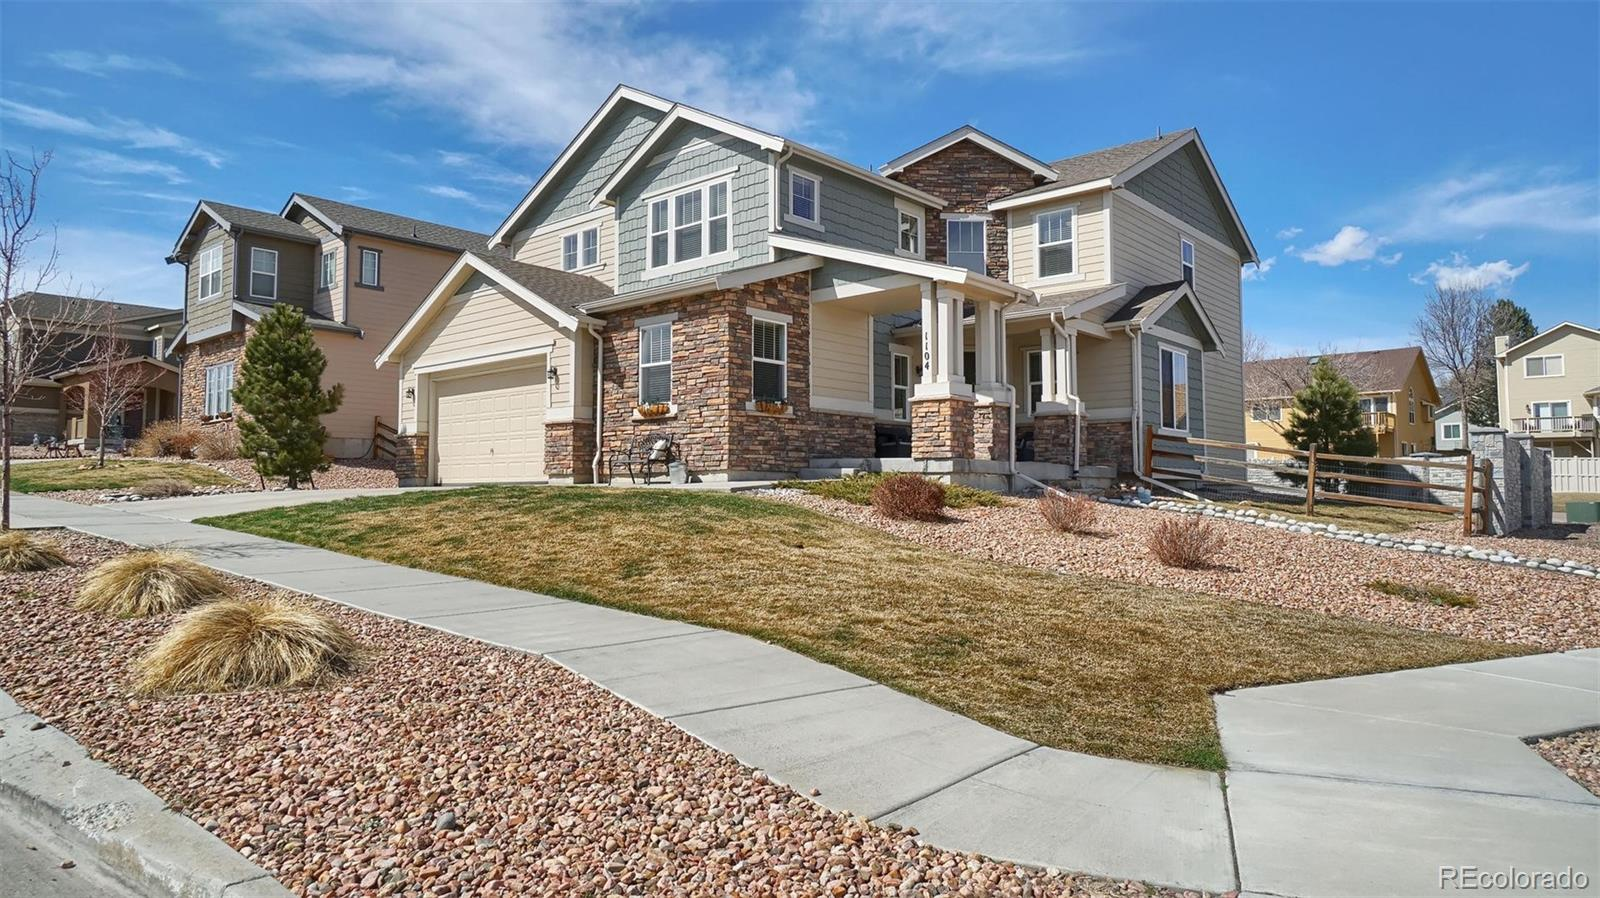 1104 Crown Haven Circle, Colorado Springs, CO 80919 - Colorado Springs, CO real estate listing